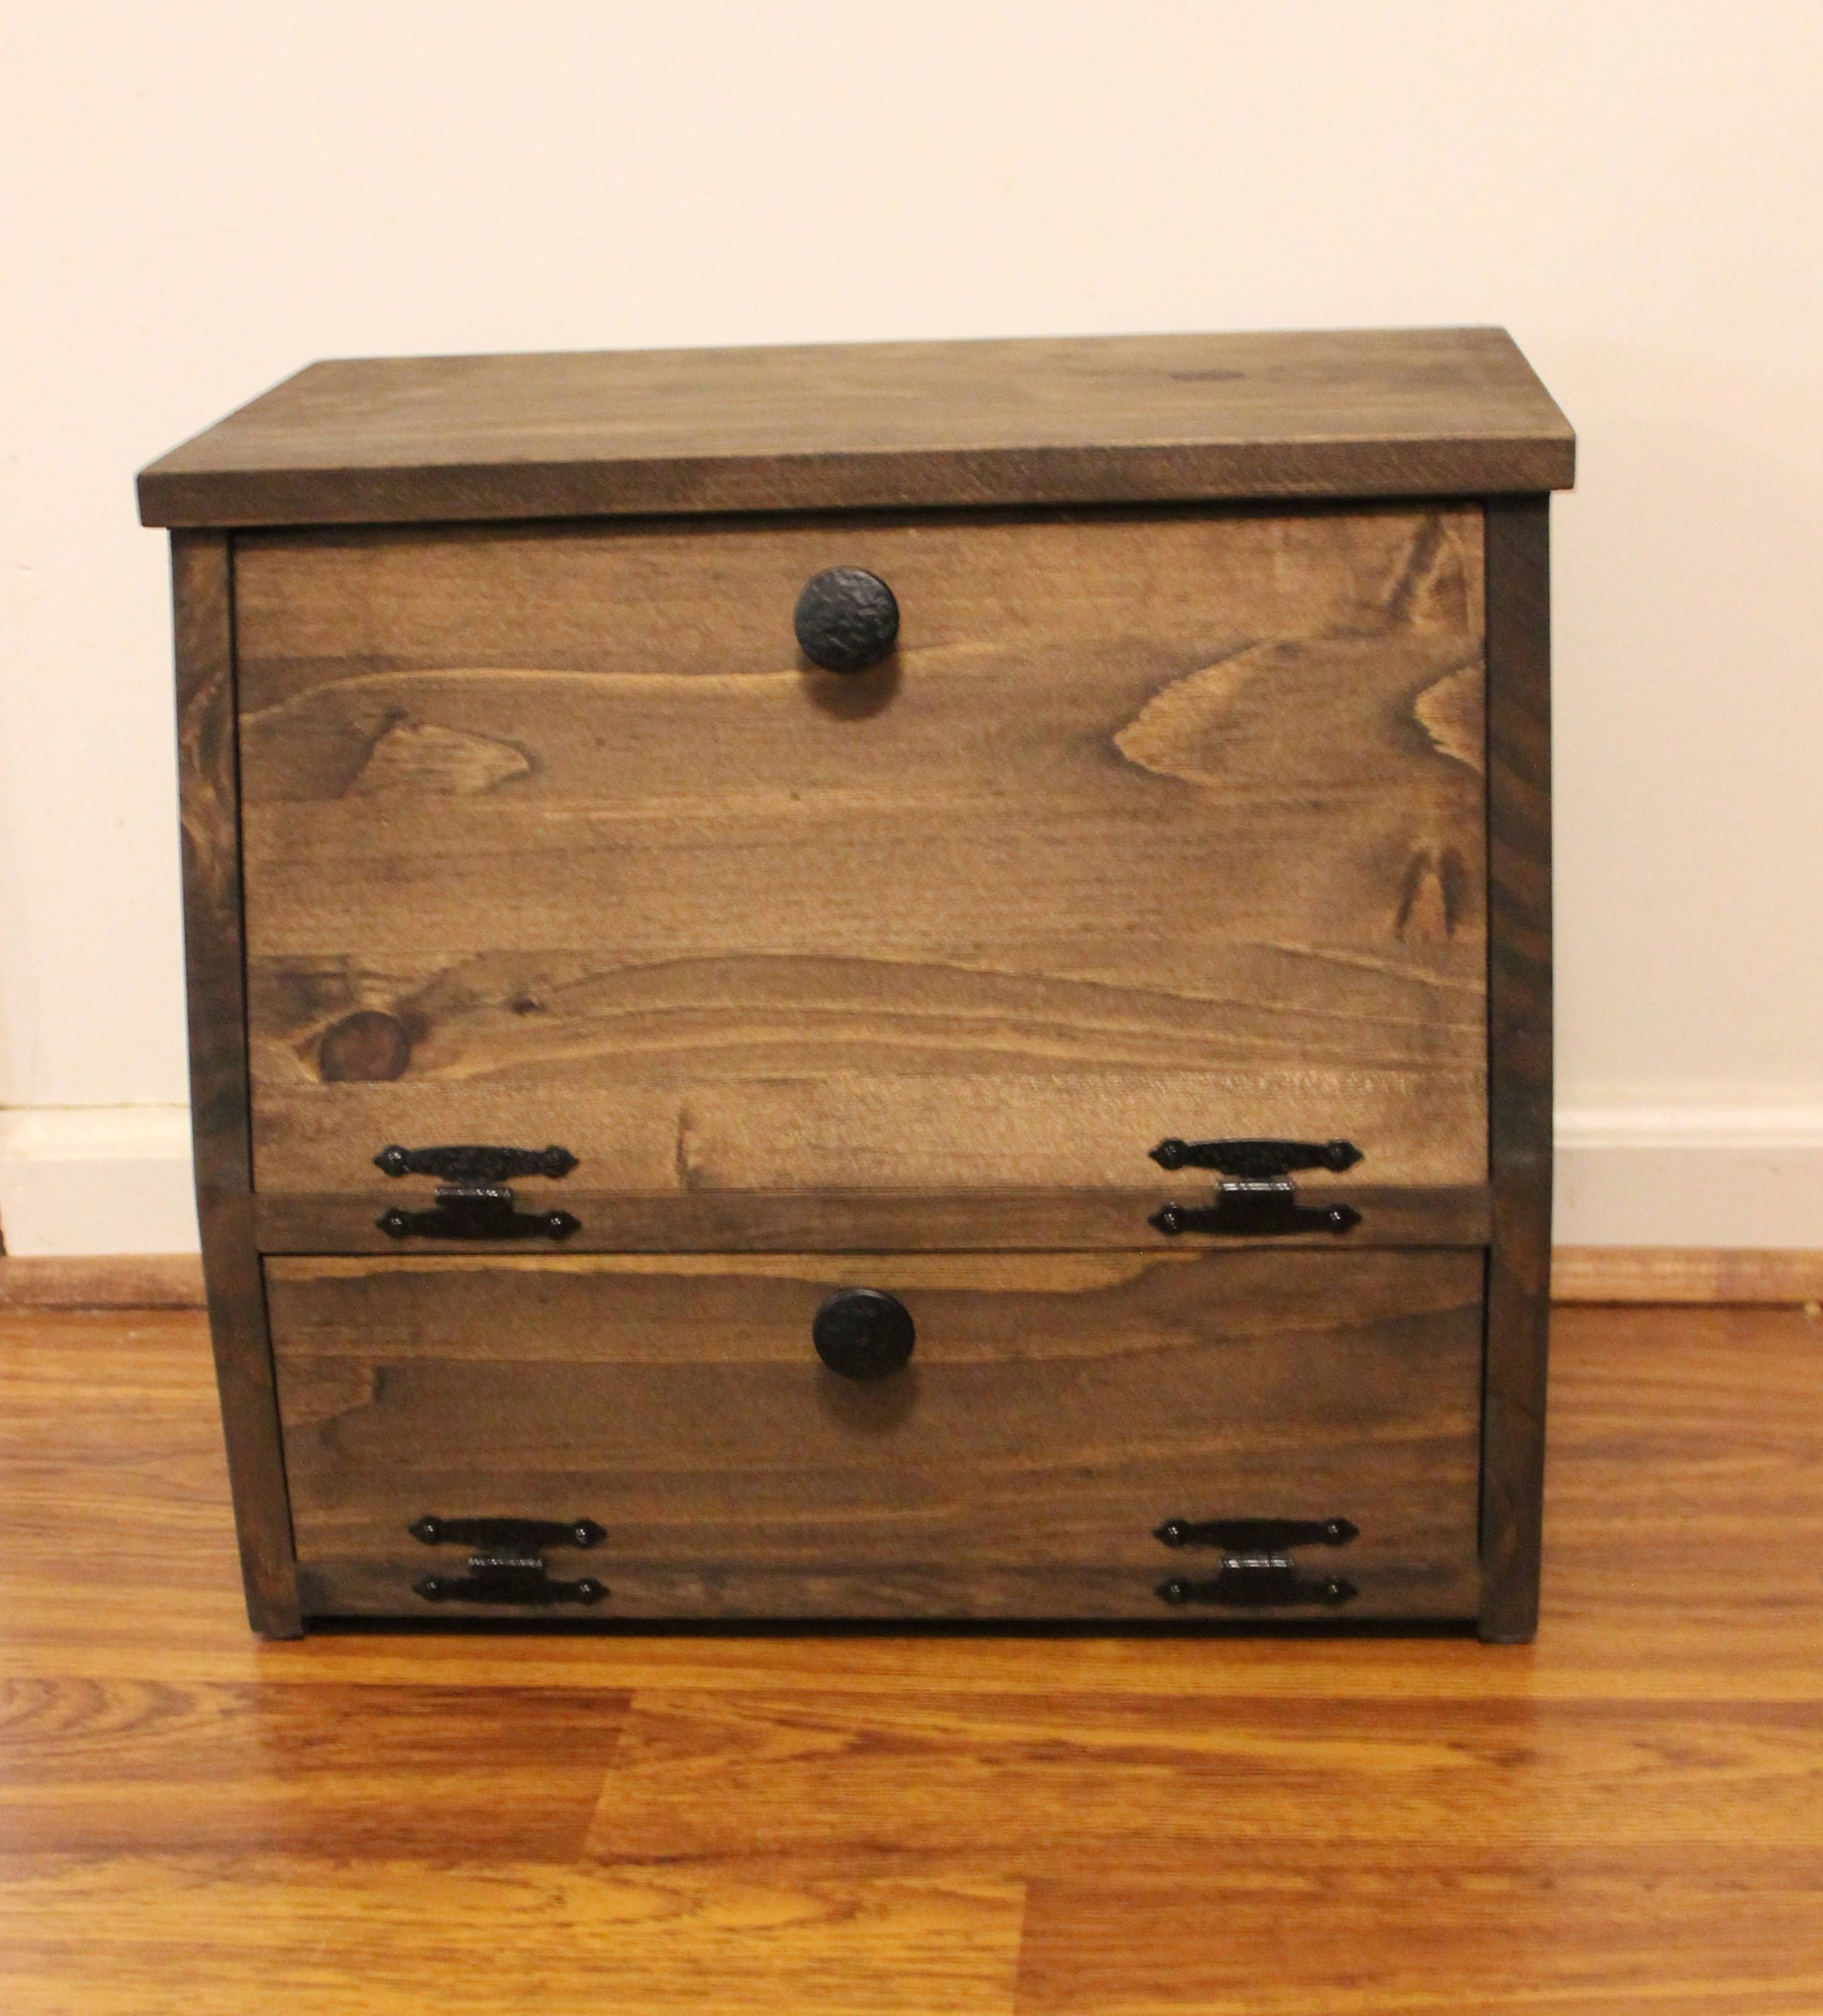 Wooden Bread Box Kitchen Storage Spices Wood Vegetable Potato Bin Primitive Rustic Cupboard Onion Potatoes Country K Cup Holder Countertop Wooden Bread Box Primitive Kitchen Wooden Storage Bins